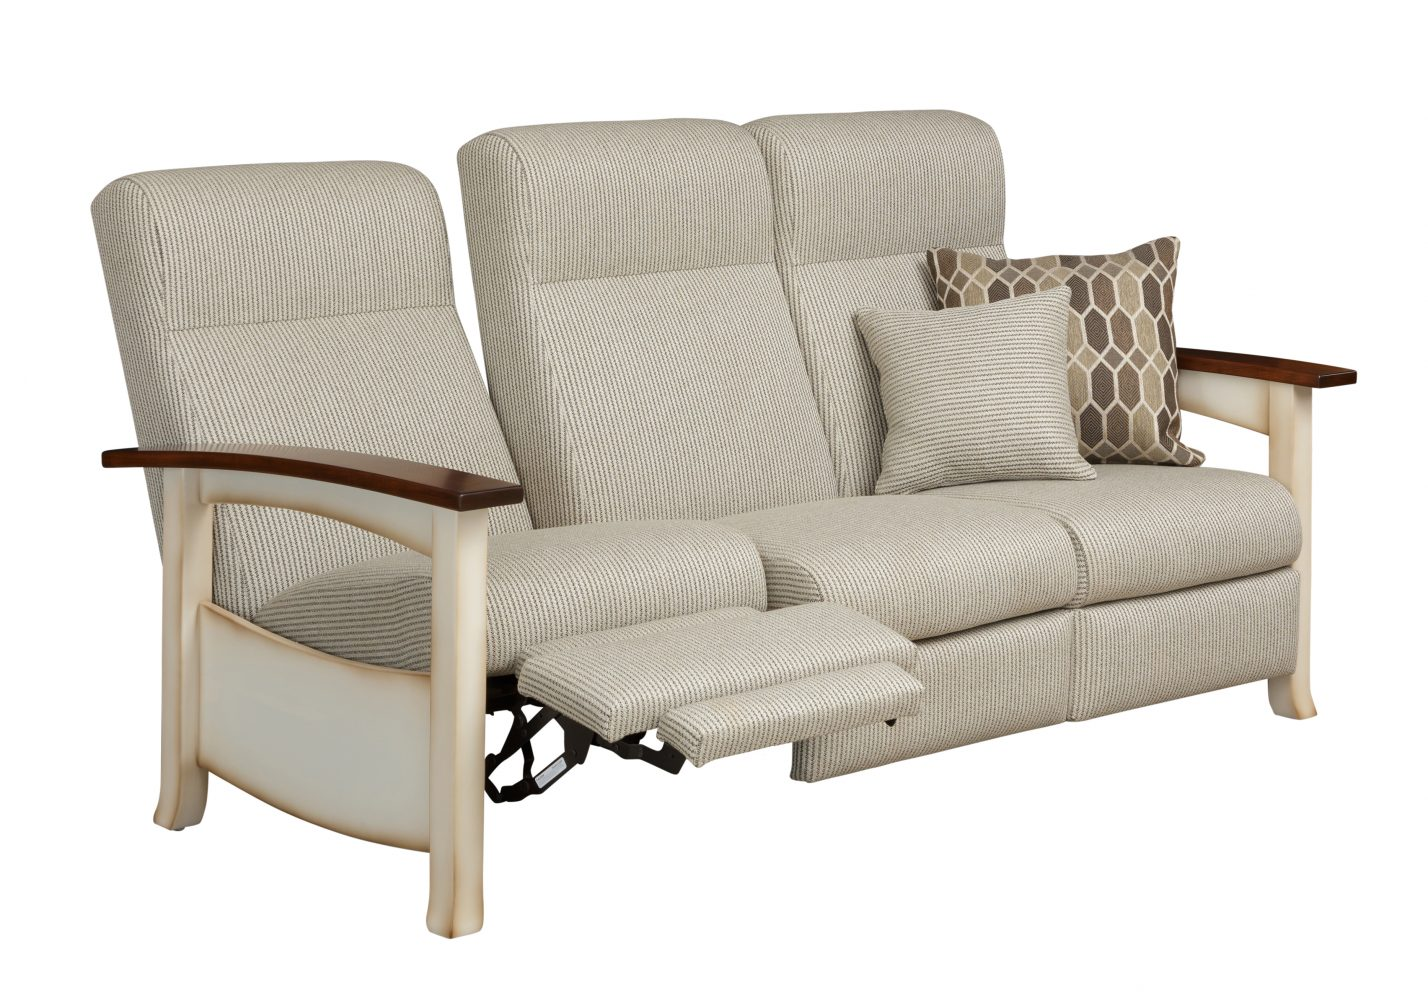 Sofa With Recliner Breezy Point Recliner Sofa